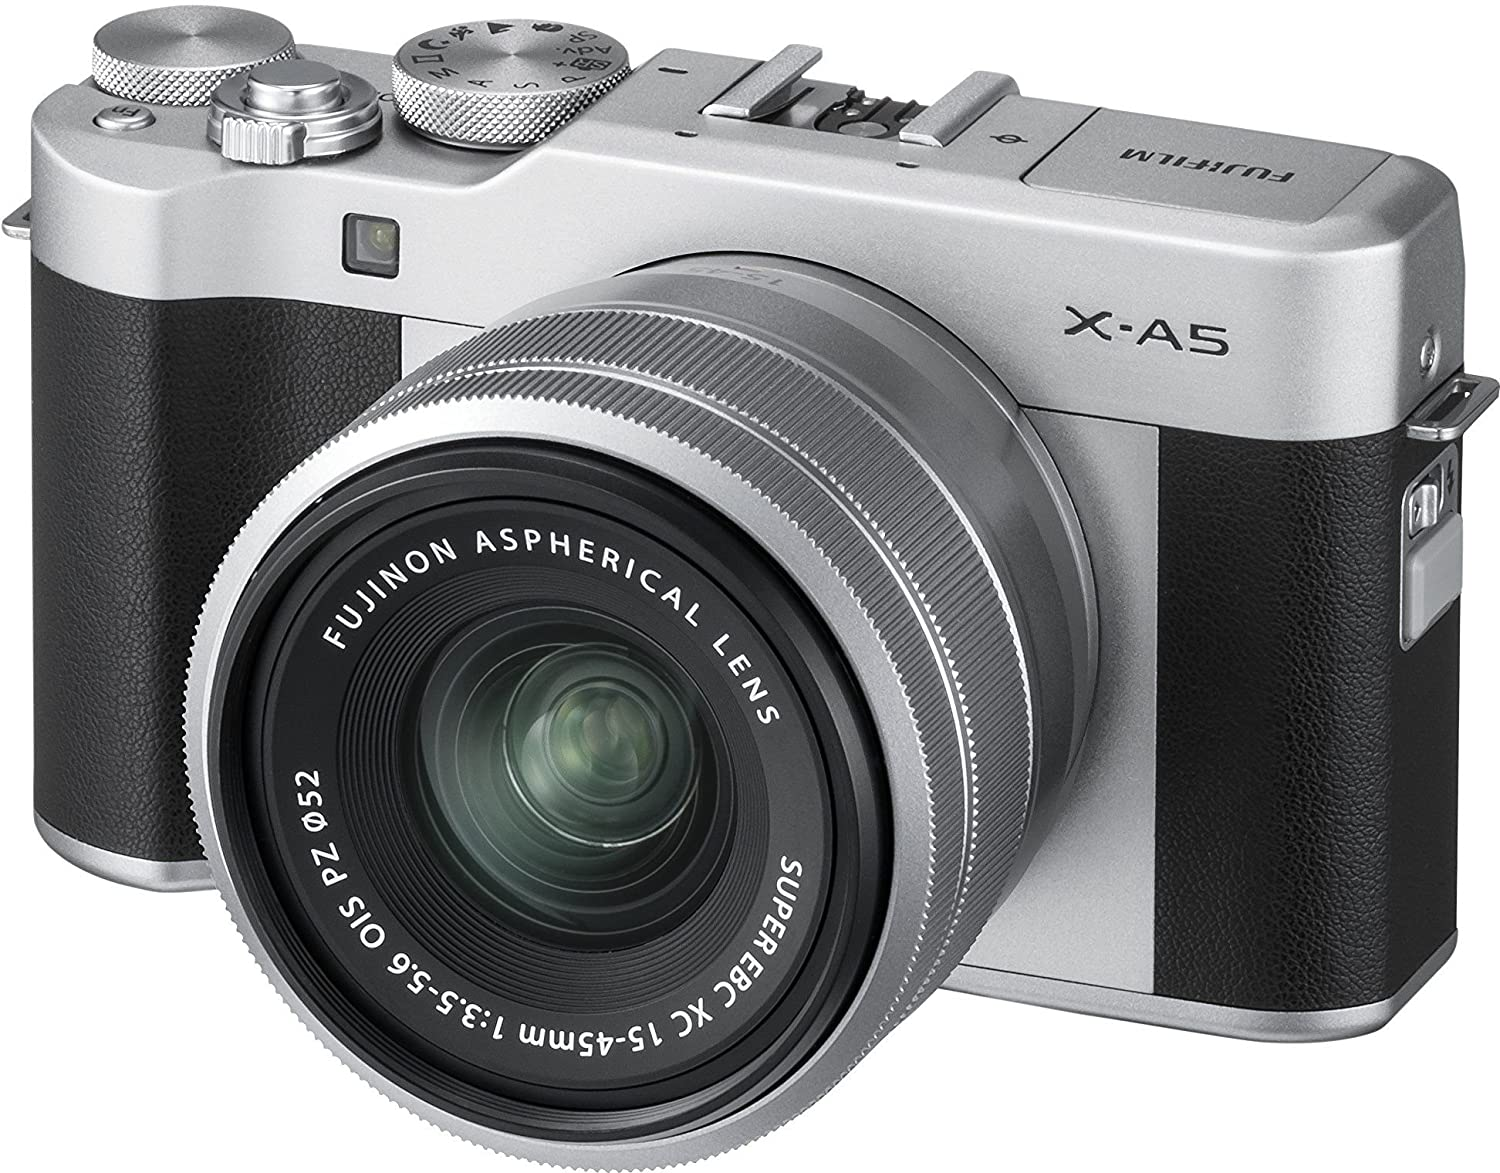 Fujifilm X-A5, kit cámara con objetivo intercambiable XC 15-45 mm /3.5-5.6 ois pz, color plata.